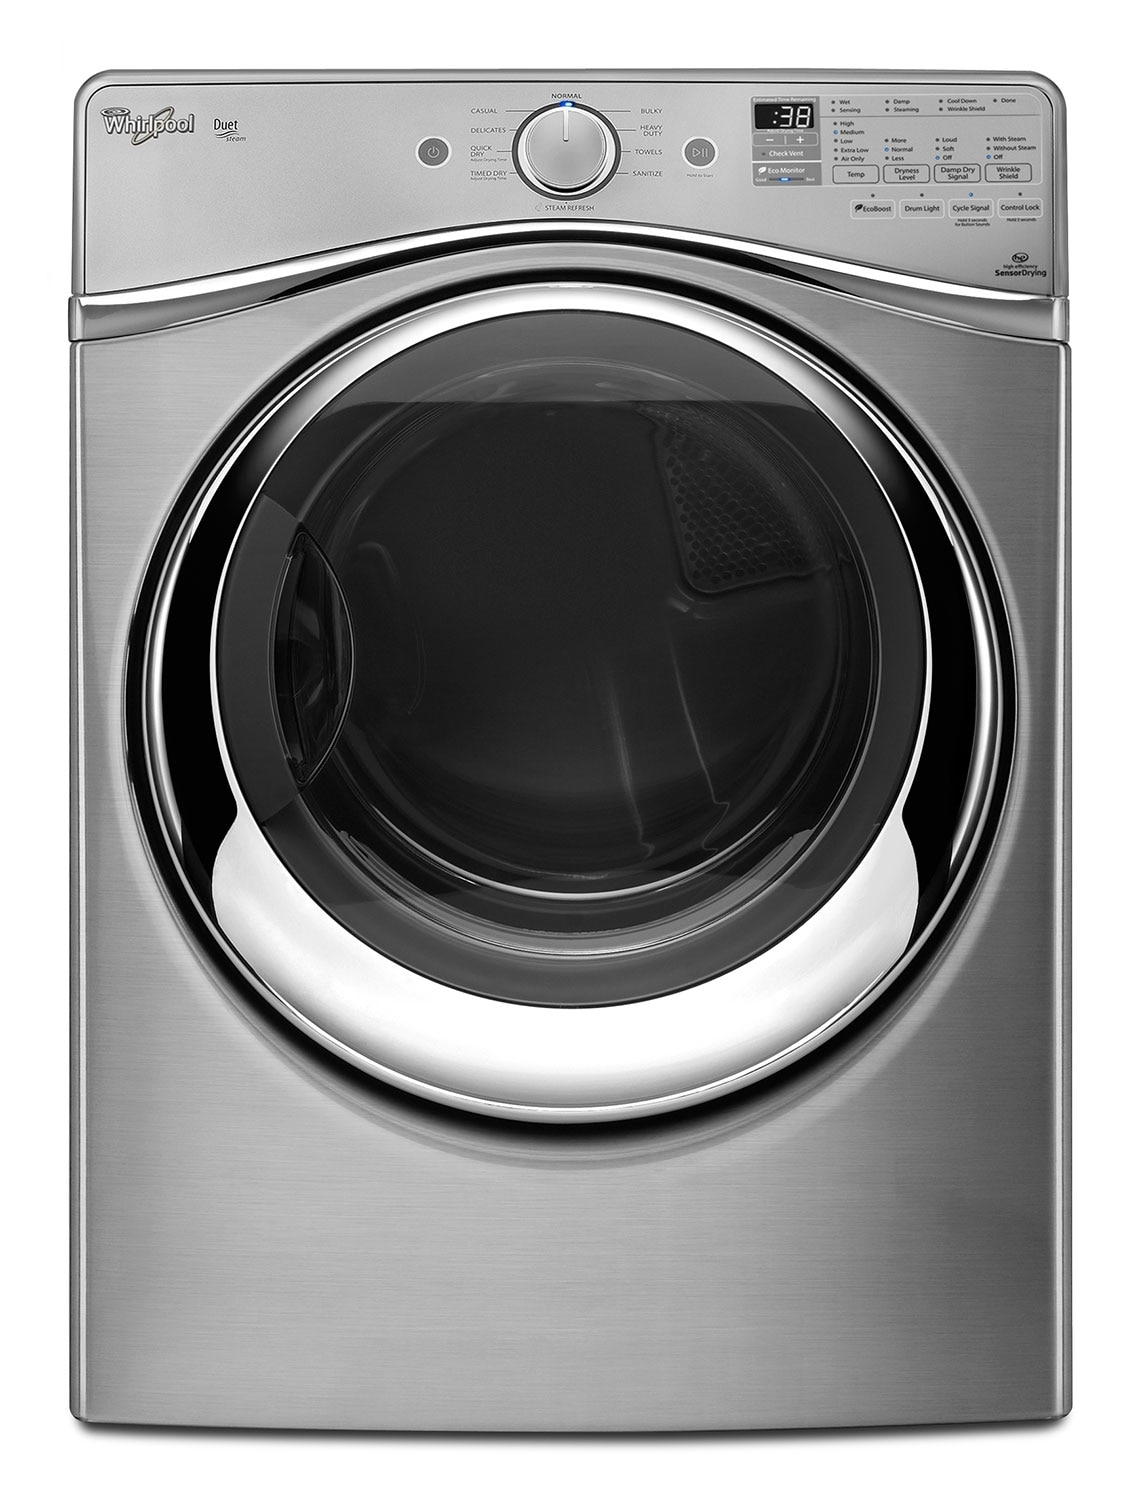 Washers and Dryers - Whirlpool Diamond Steel Gas Dryer (7.3 Cu. Ft.) - WGD95HEDU